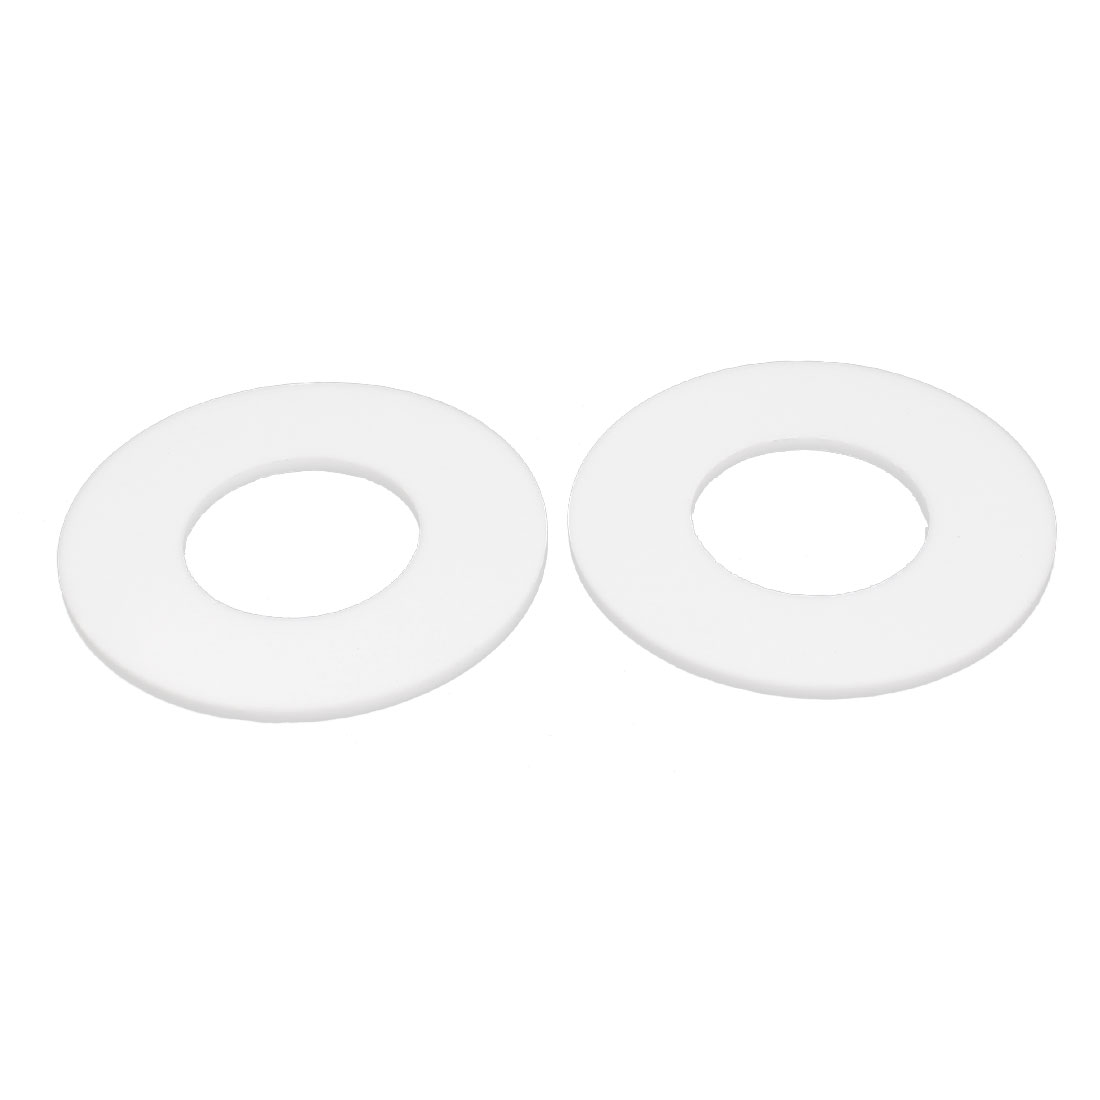 DN32 38x78x3mm PTFE Flange Gasket Sanitary Pipe Fitting Ferrules White 2pcs